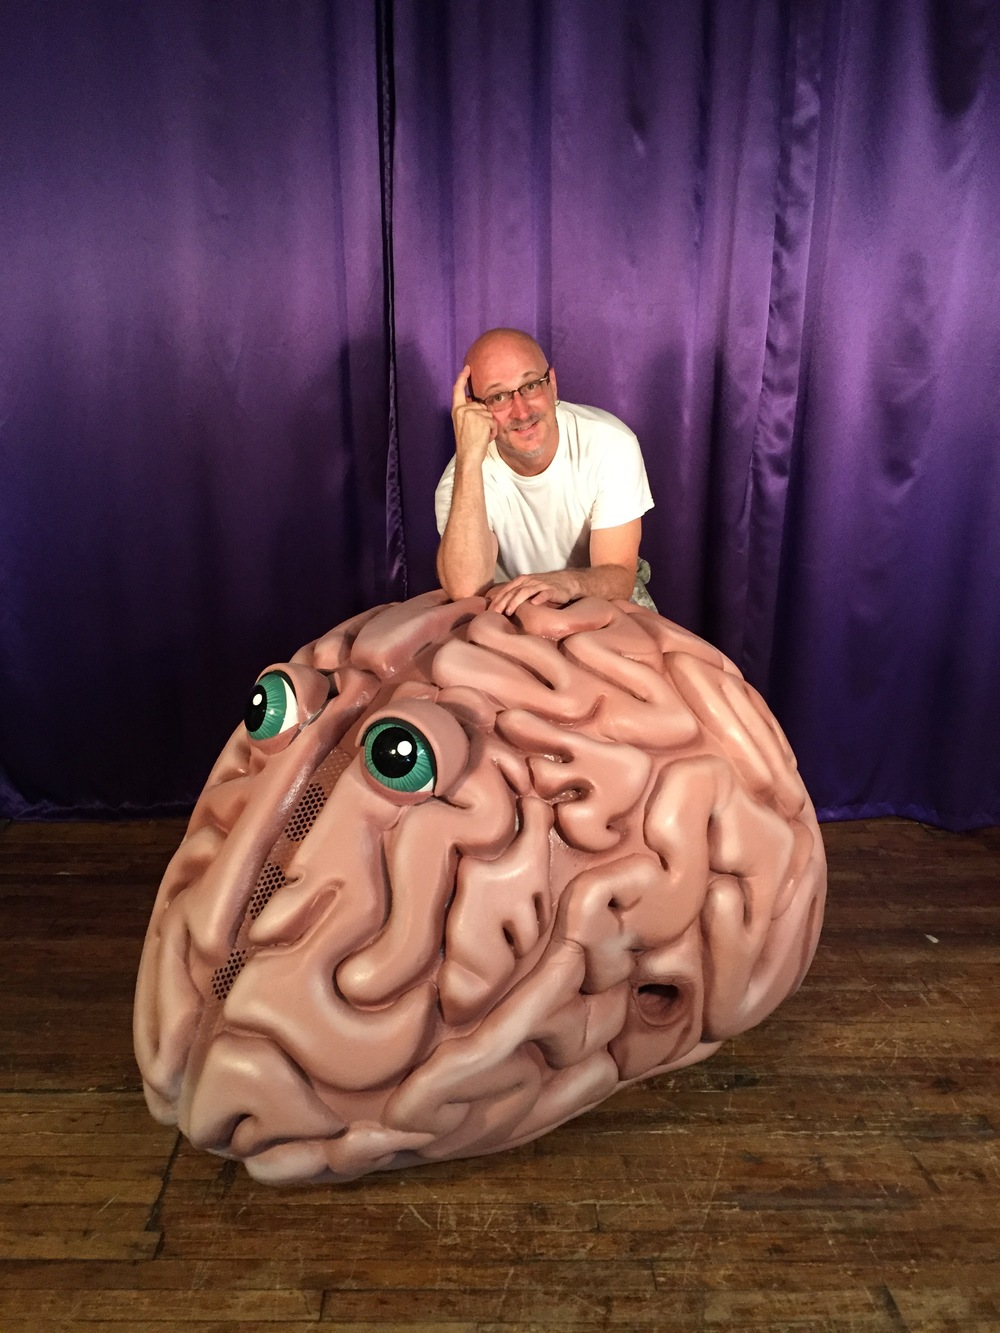 Scott poses with (wide-eyed!) brain costume